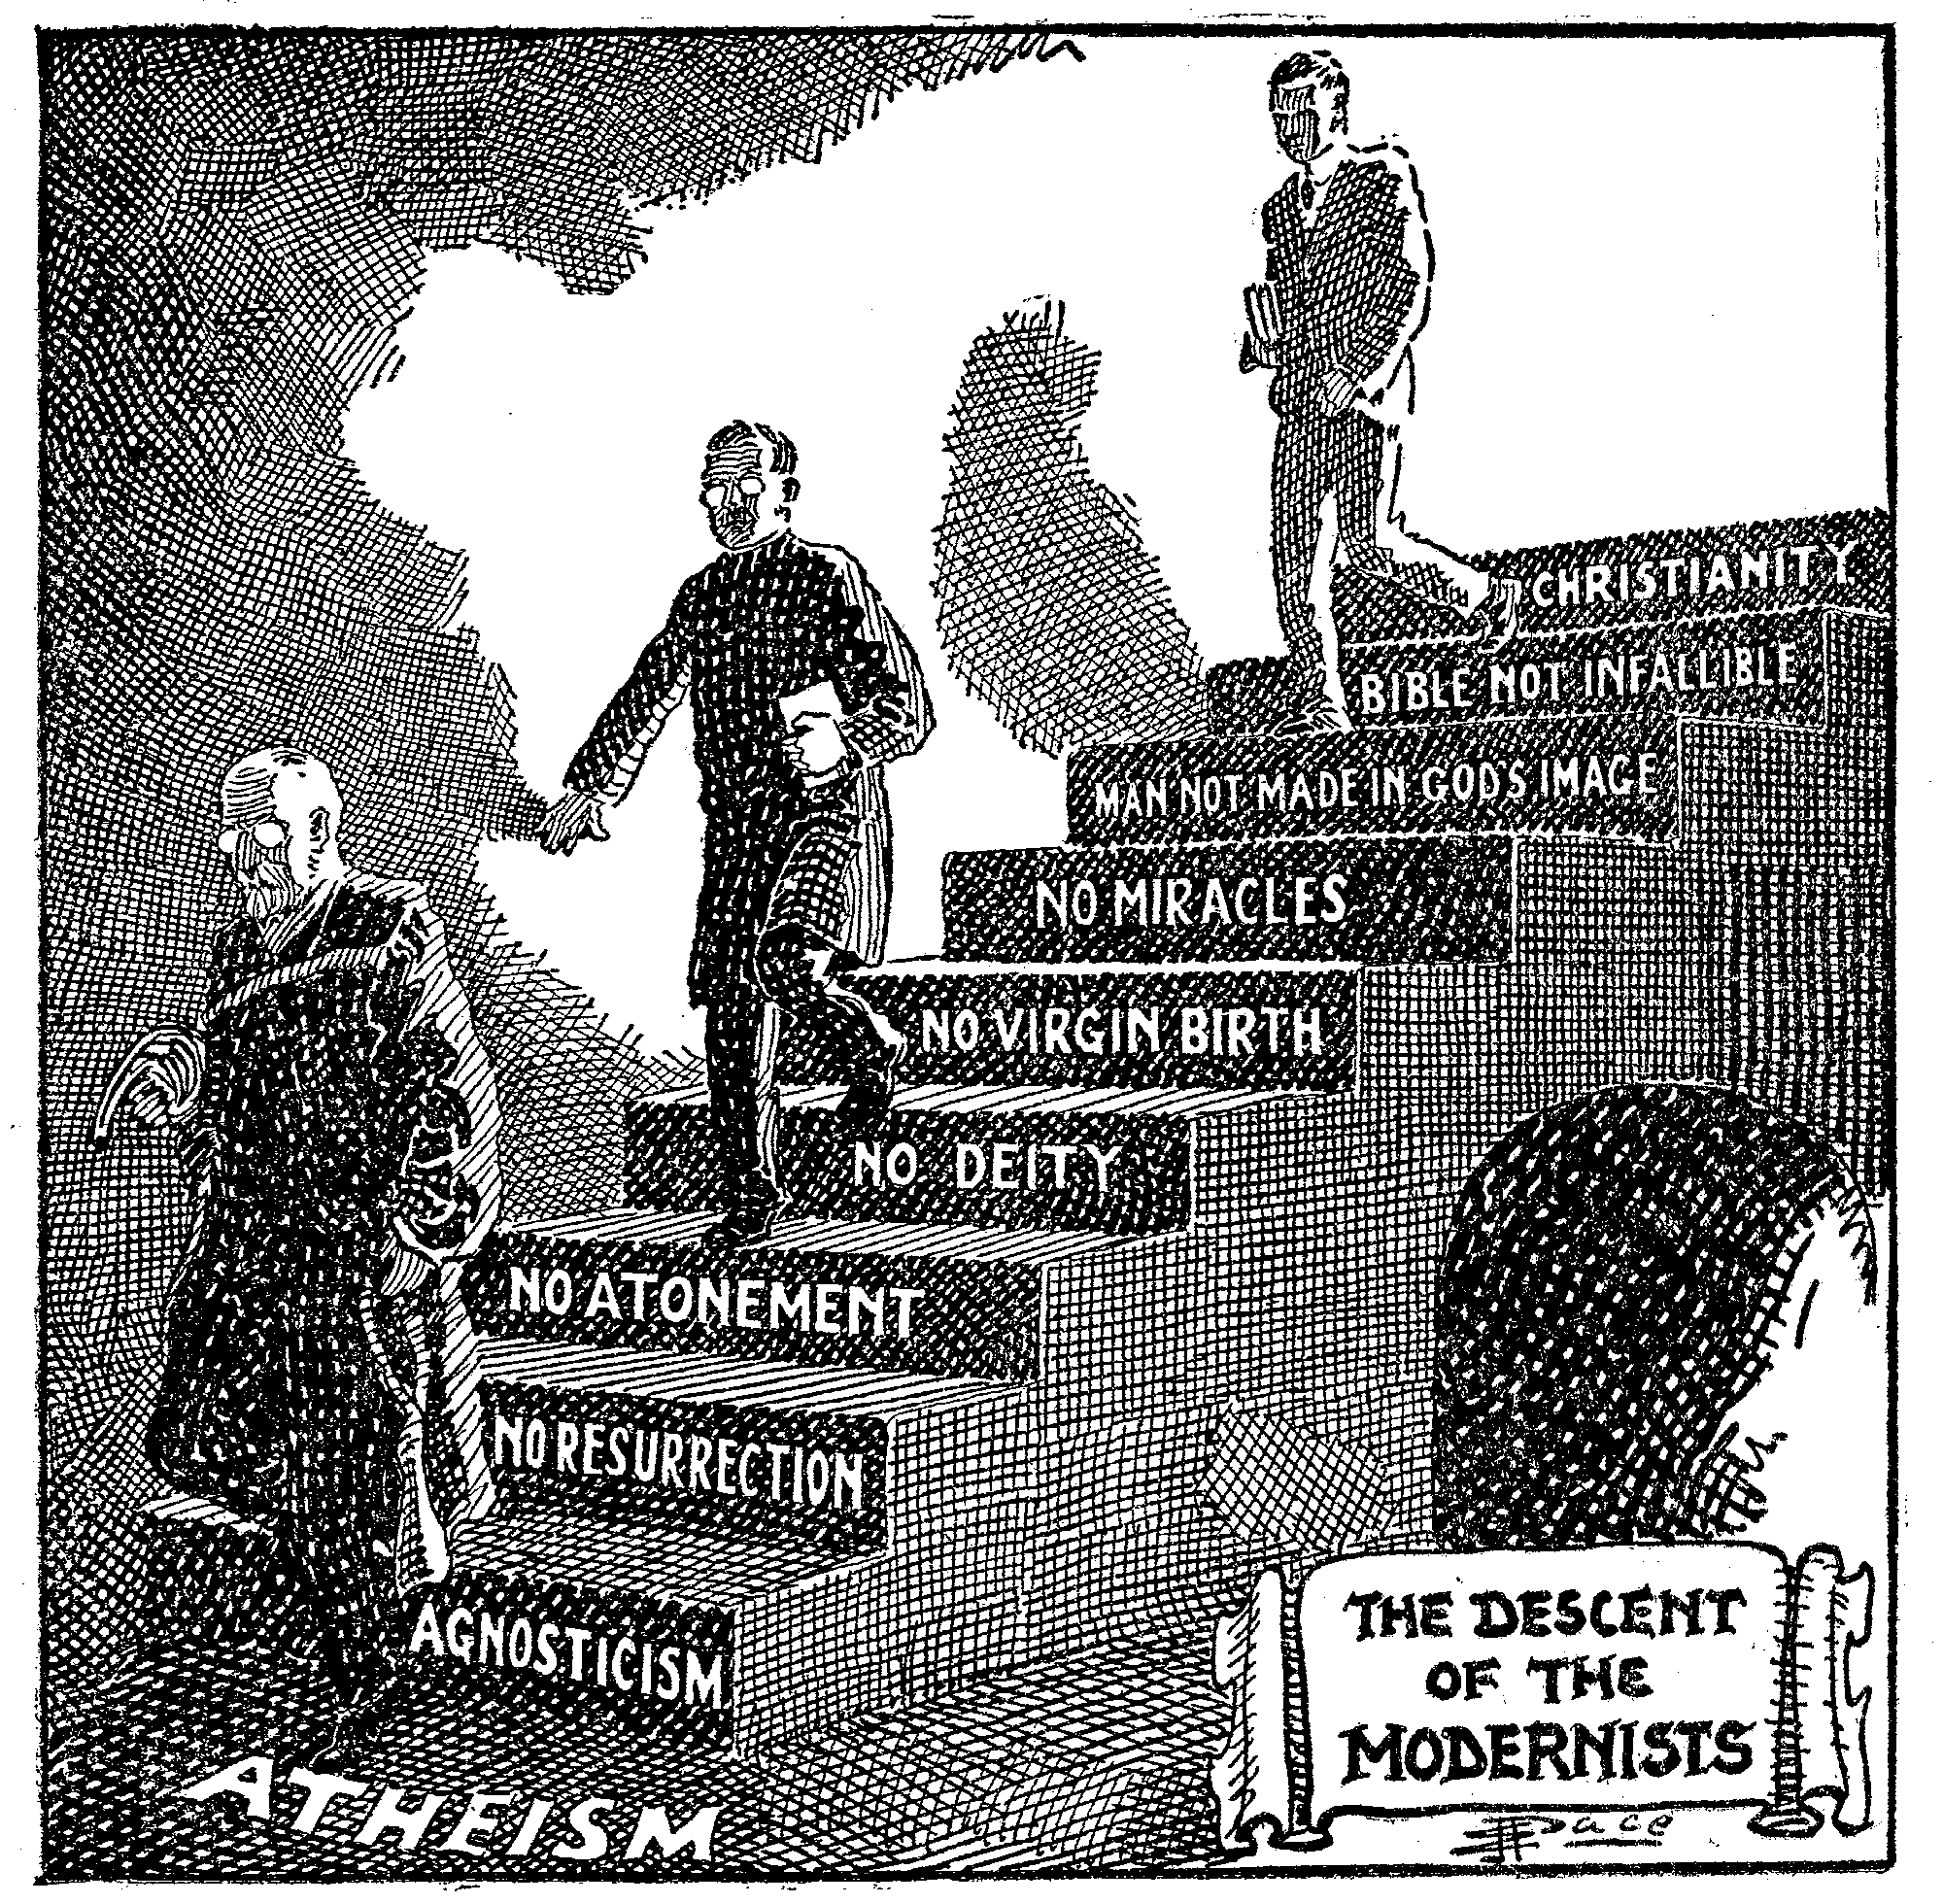 Catholicism, Liberalism, the Right: A Sketch from the 1920's